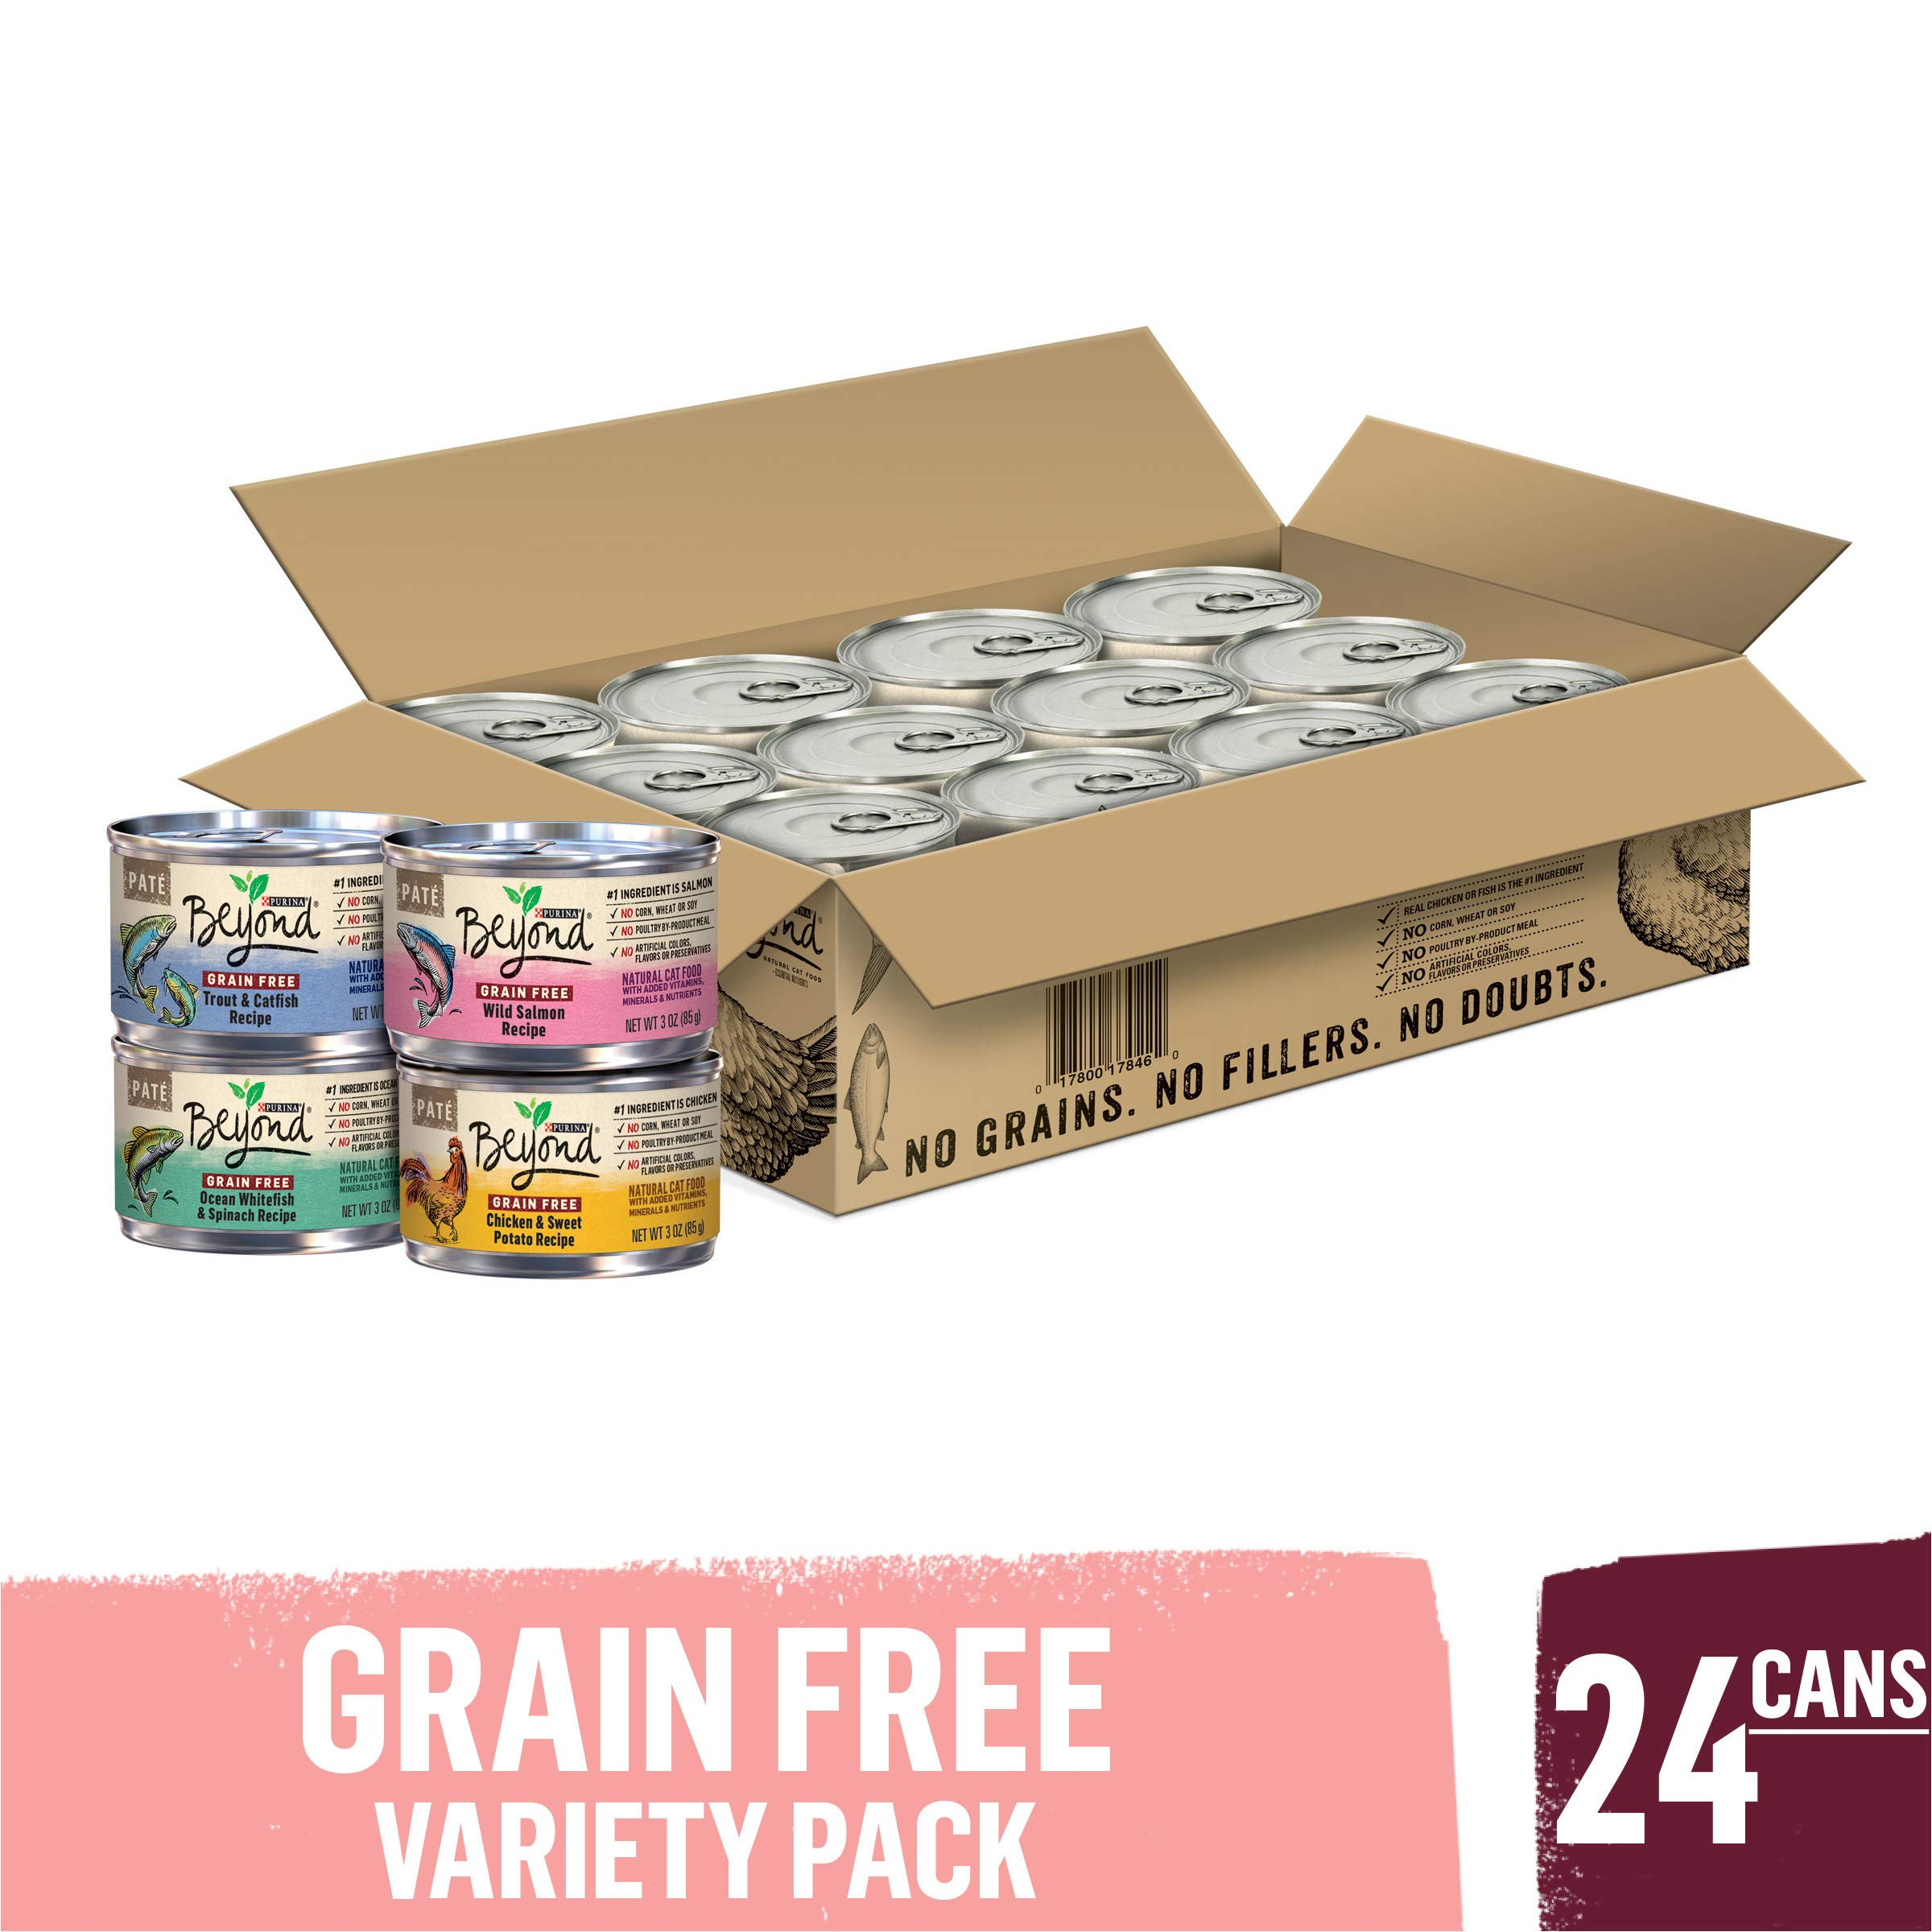 Purina Beyond Grain Free, Natural Pate Wet Cat Food Variety Pack, Grain Free - (24) 3 oz. Cans by Purina Beyond